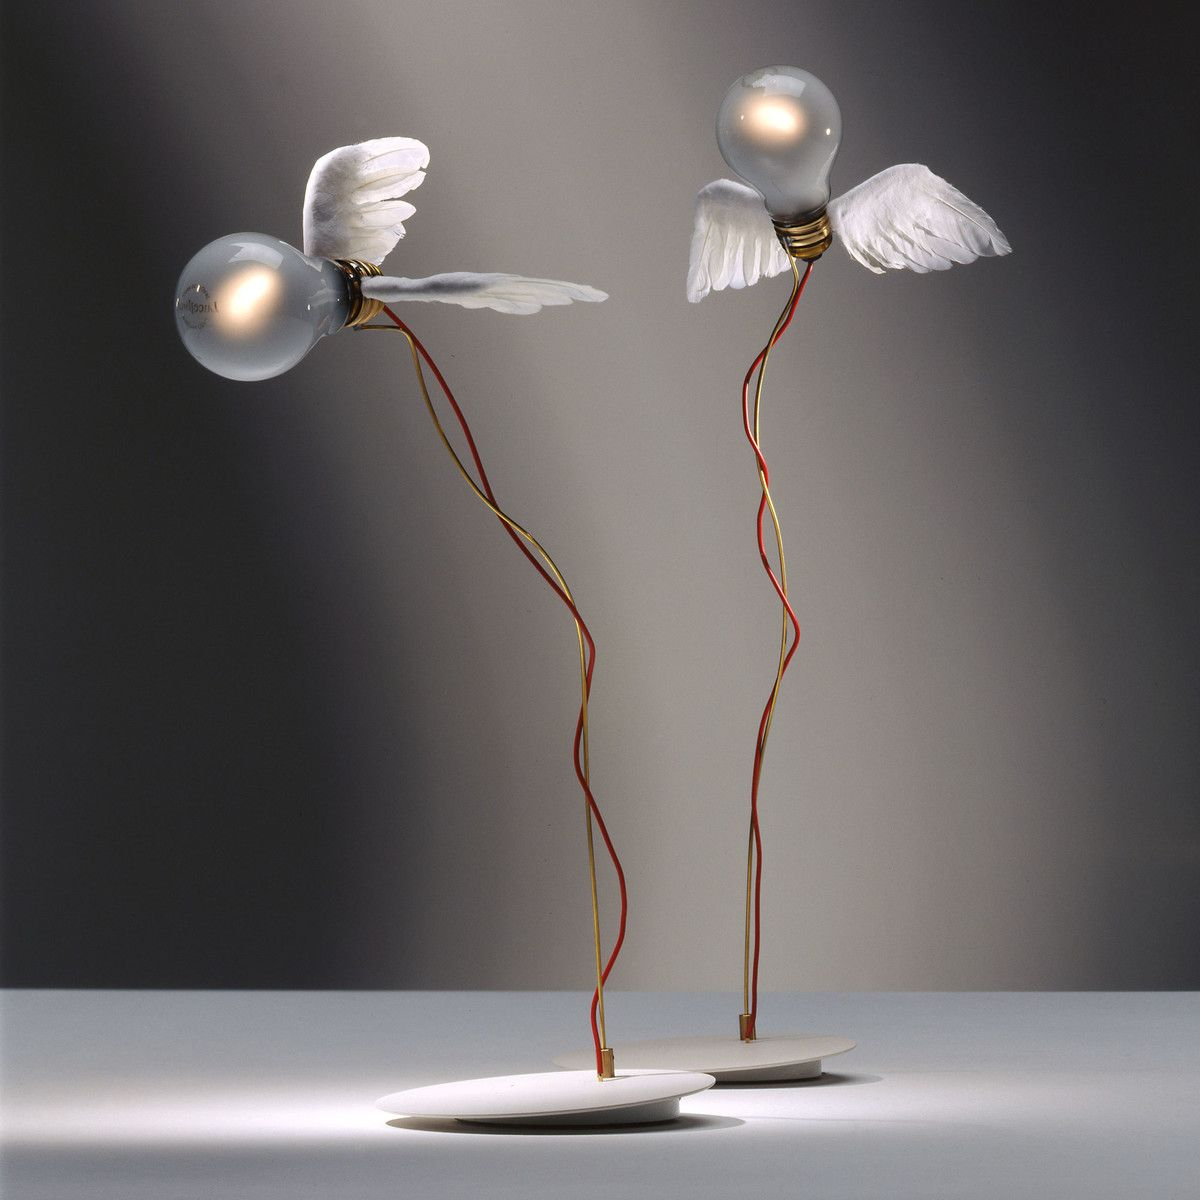 INGO MAURER<br>exceptional lamps, lighting systems and projects